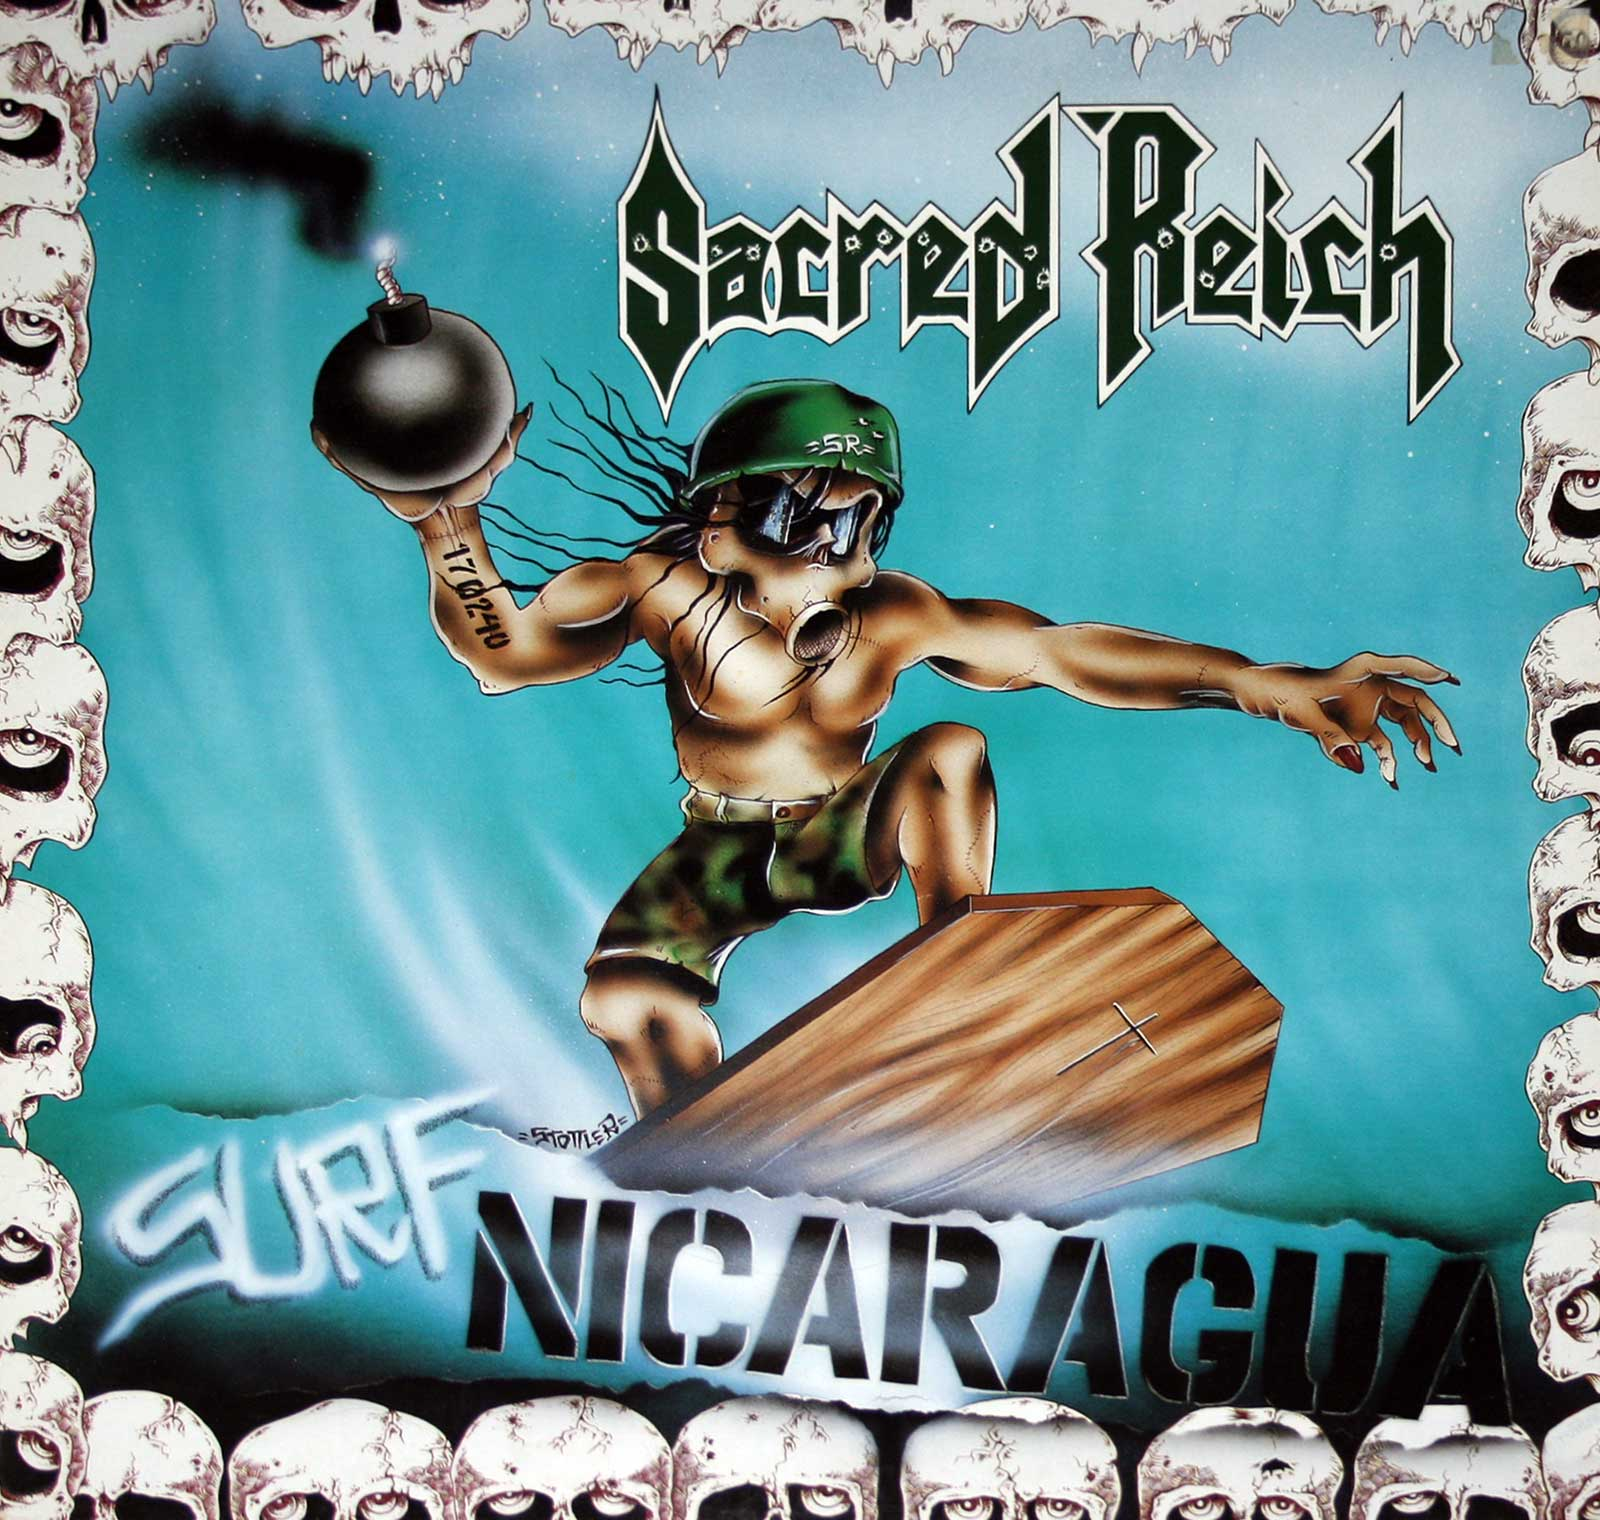 large photo of the album front cover of: Sacred Reich Surf Nicaragua